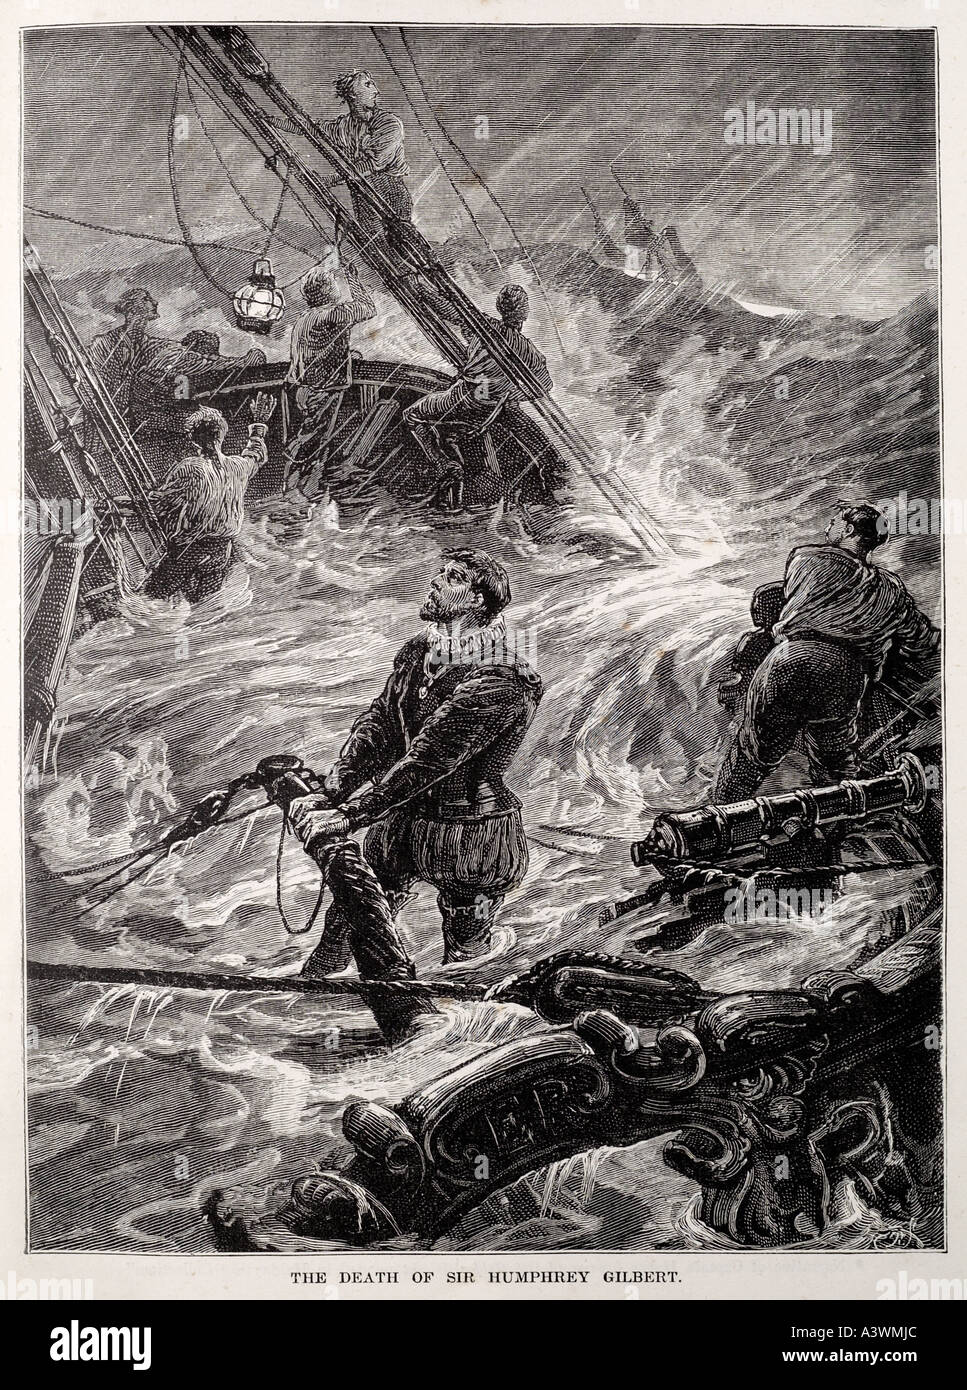 humphrey gilbert Sink go down with ship loss wreck flood founder storm tempest hold pray drown sail ship boat awash - Stock Image